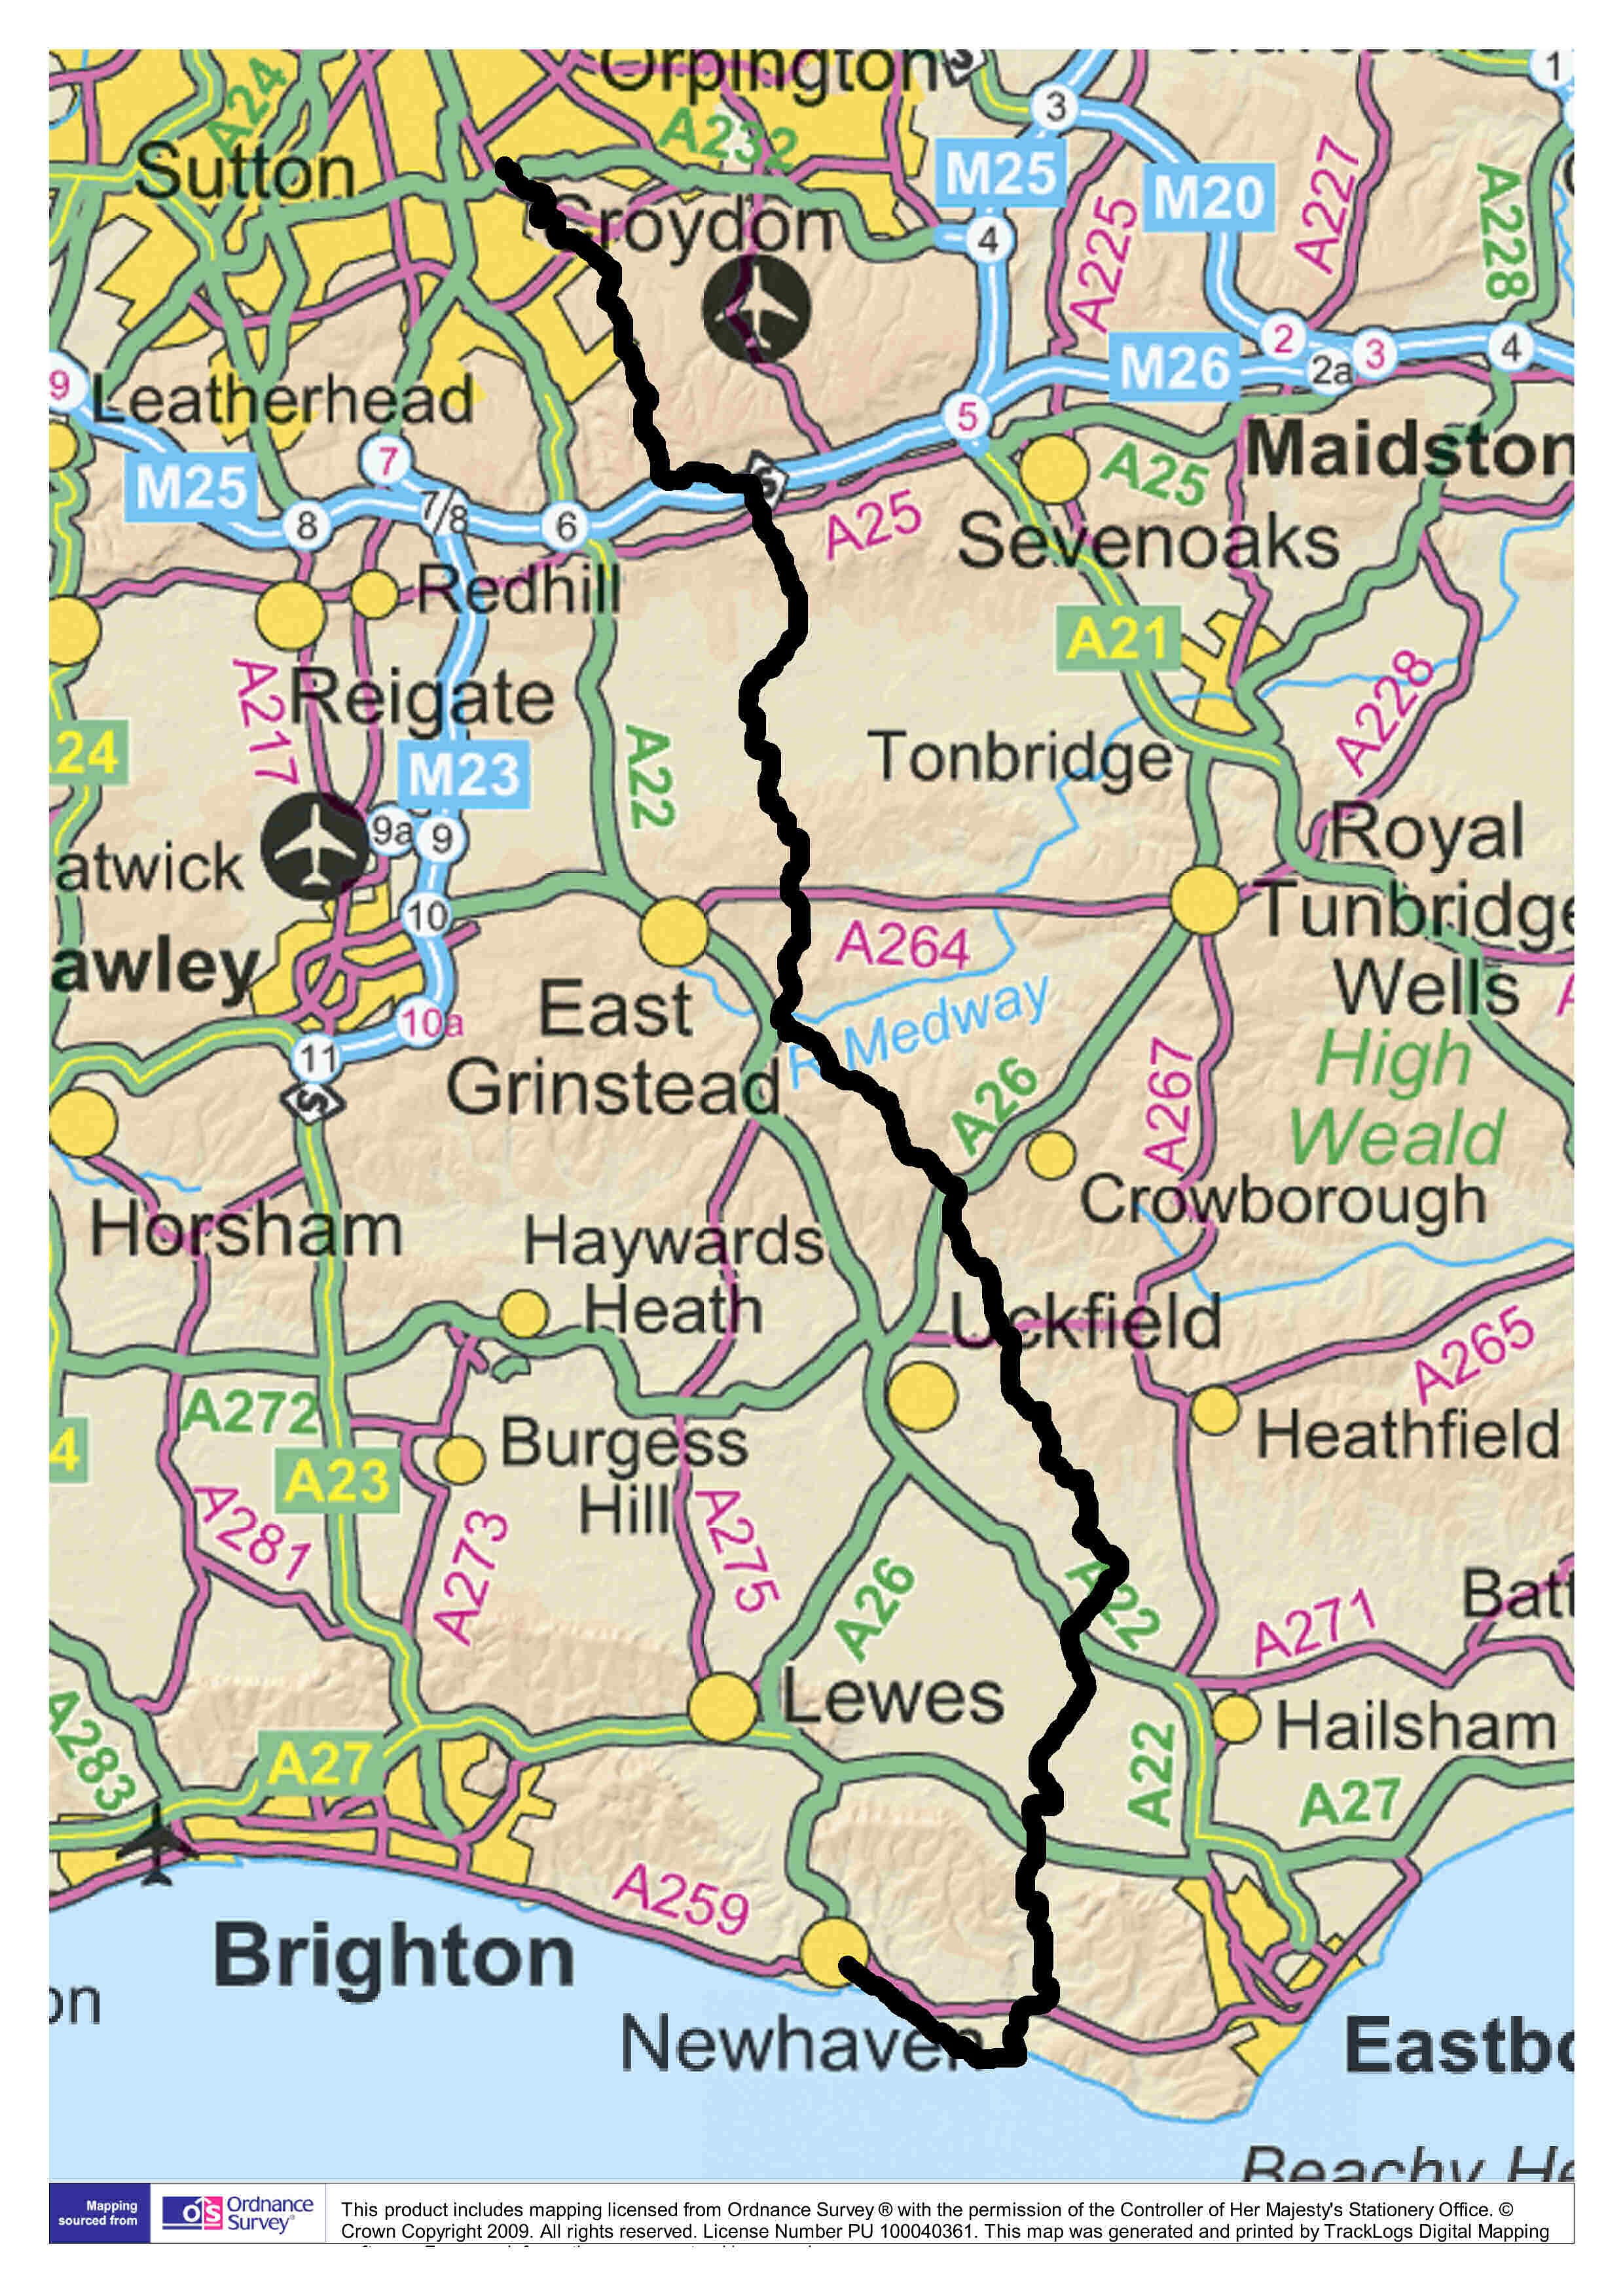 The Vanguard Way Longdistance Walking Trail - Map out walking distance